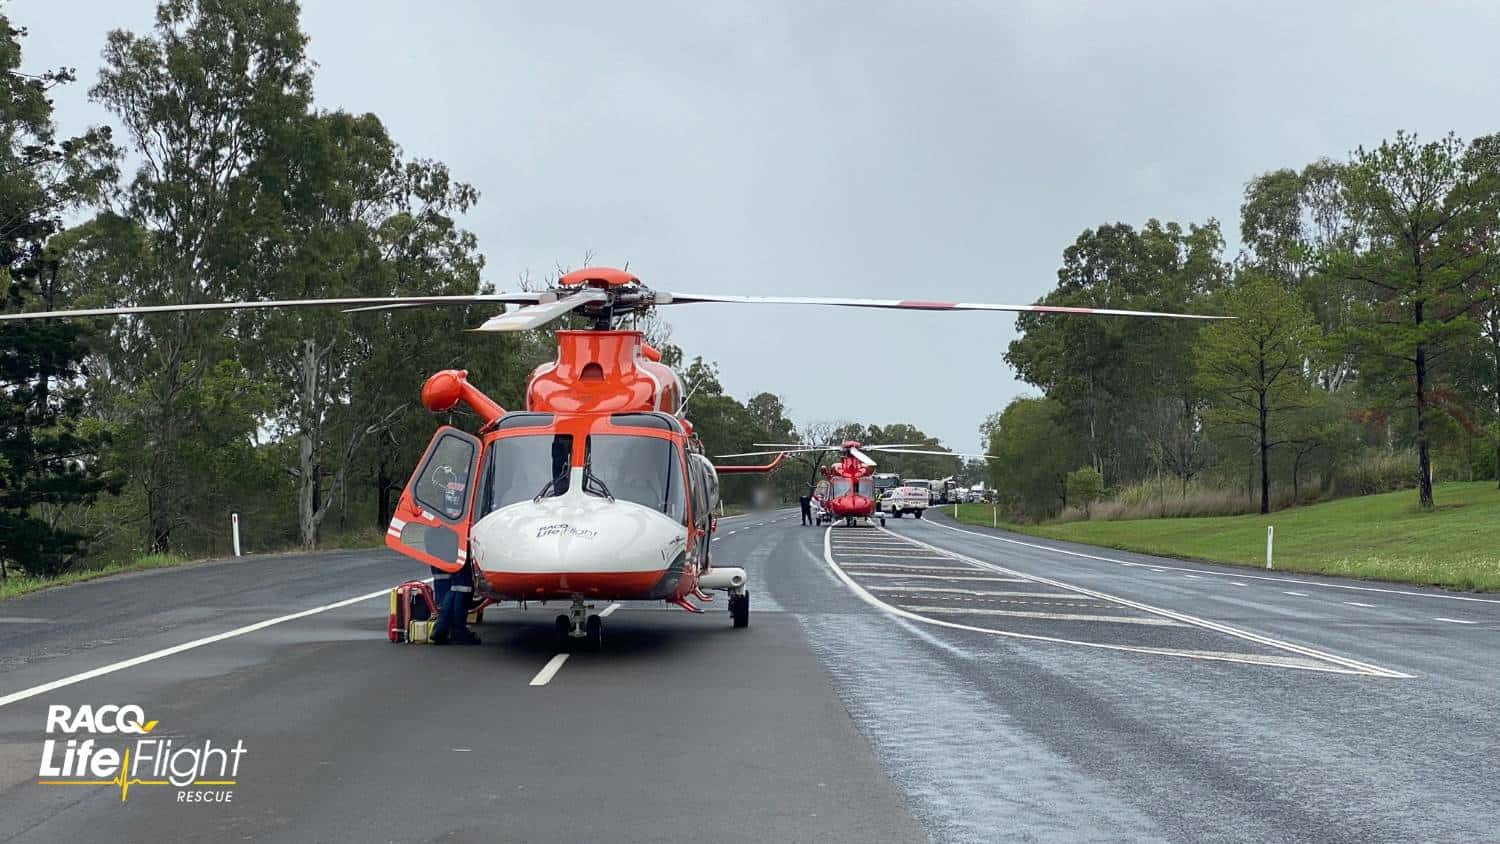 RACQ LifeFlight Rescue airlifts critically injured man after head-on crash